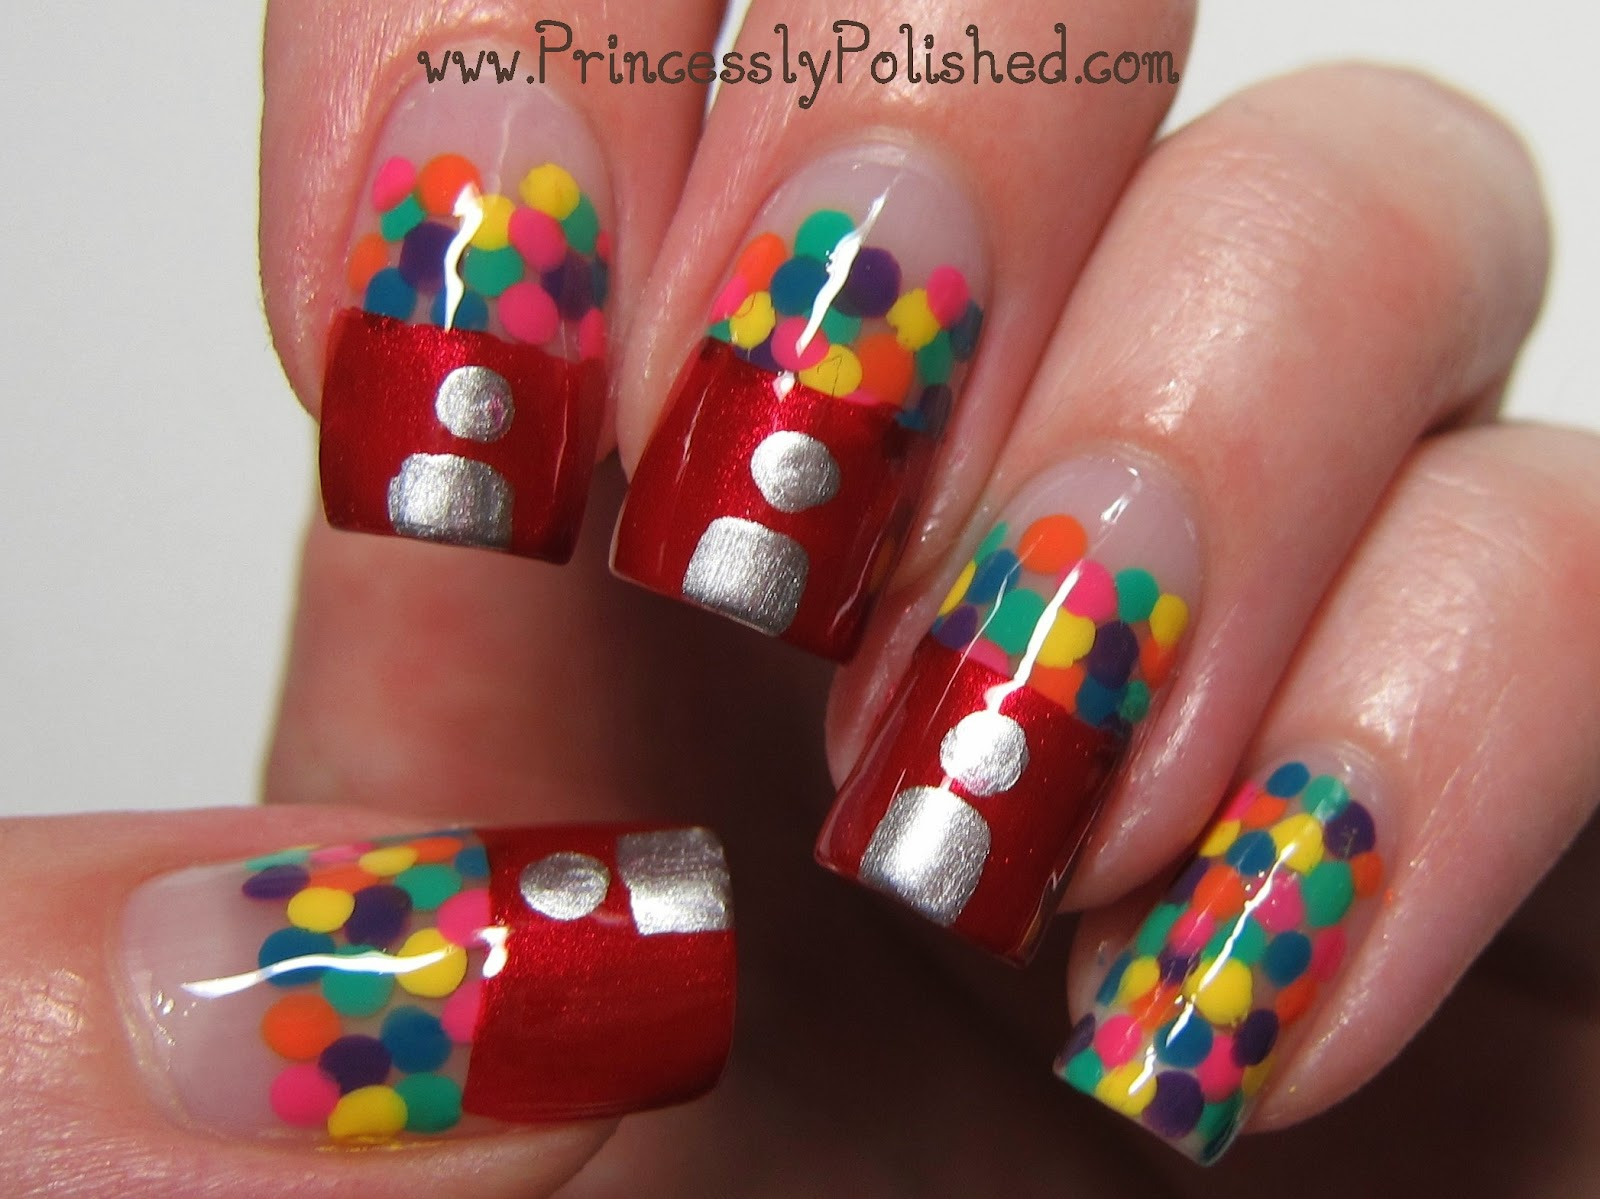 Princessly Polished: Tutorial: Gumball Machine Nail Art